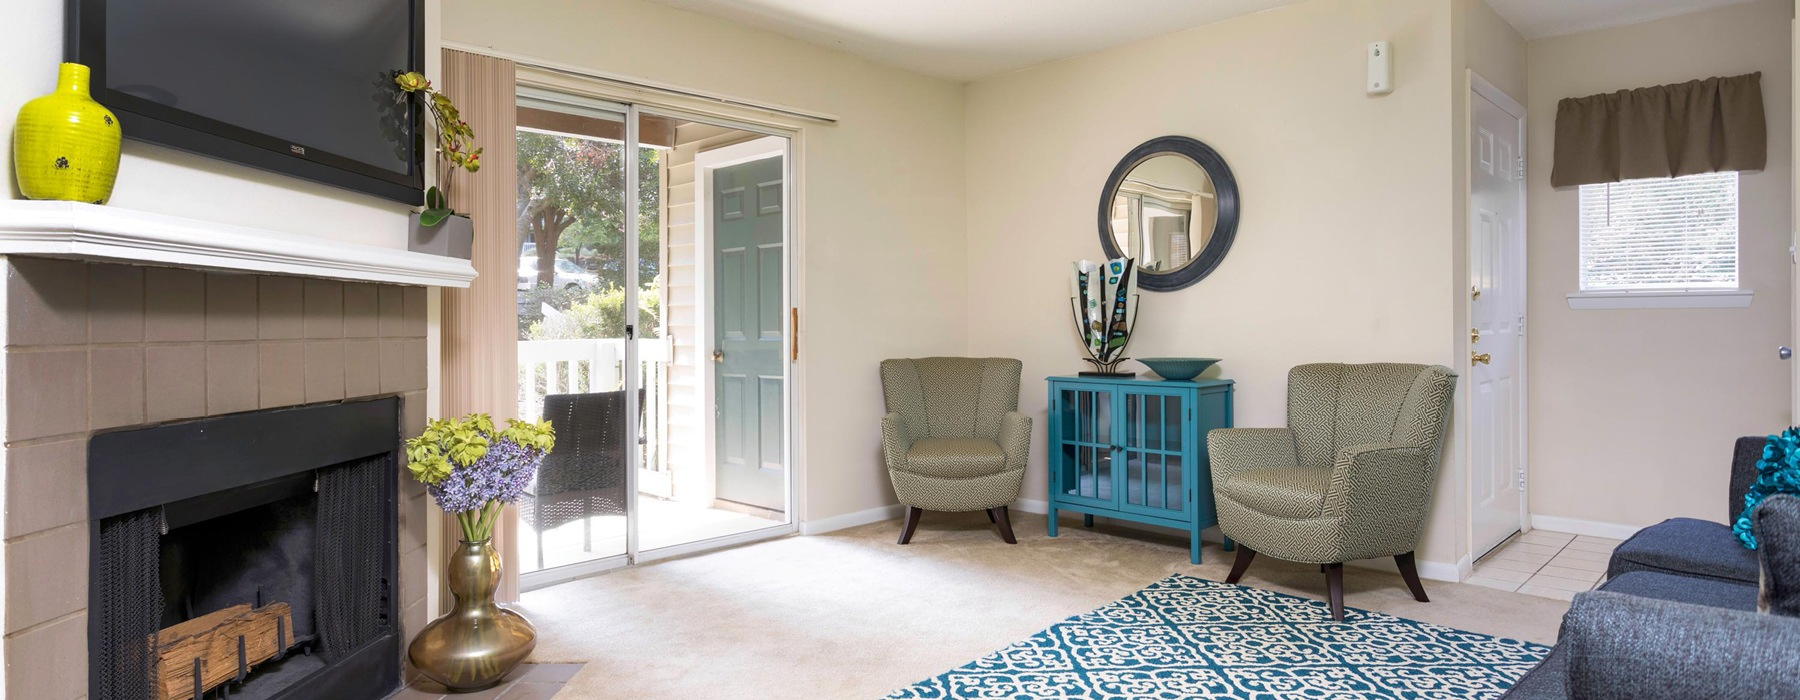 fireplace in brightly lit living room and private porch storage closet